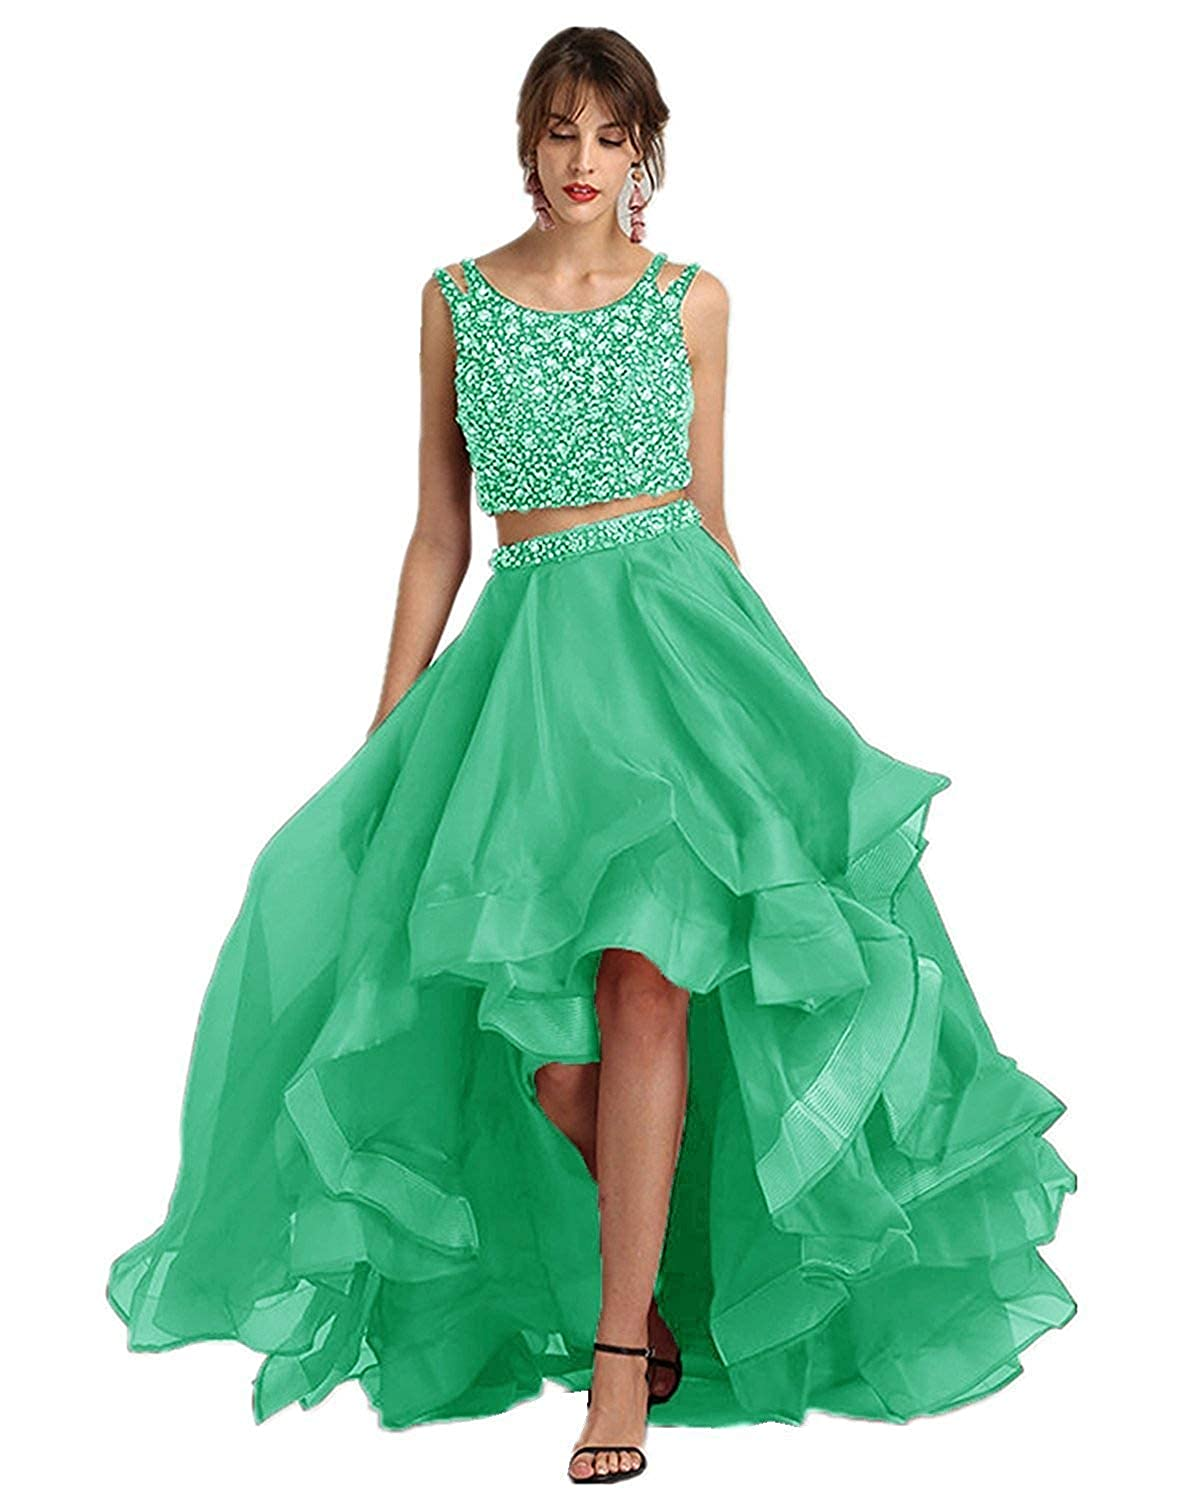 Green 20KyleBird Sexy Two Piece High Low Tulle Prom Dresses Long Sleeveless ALine Beaded Evening Party Gowns for Women Formal